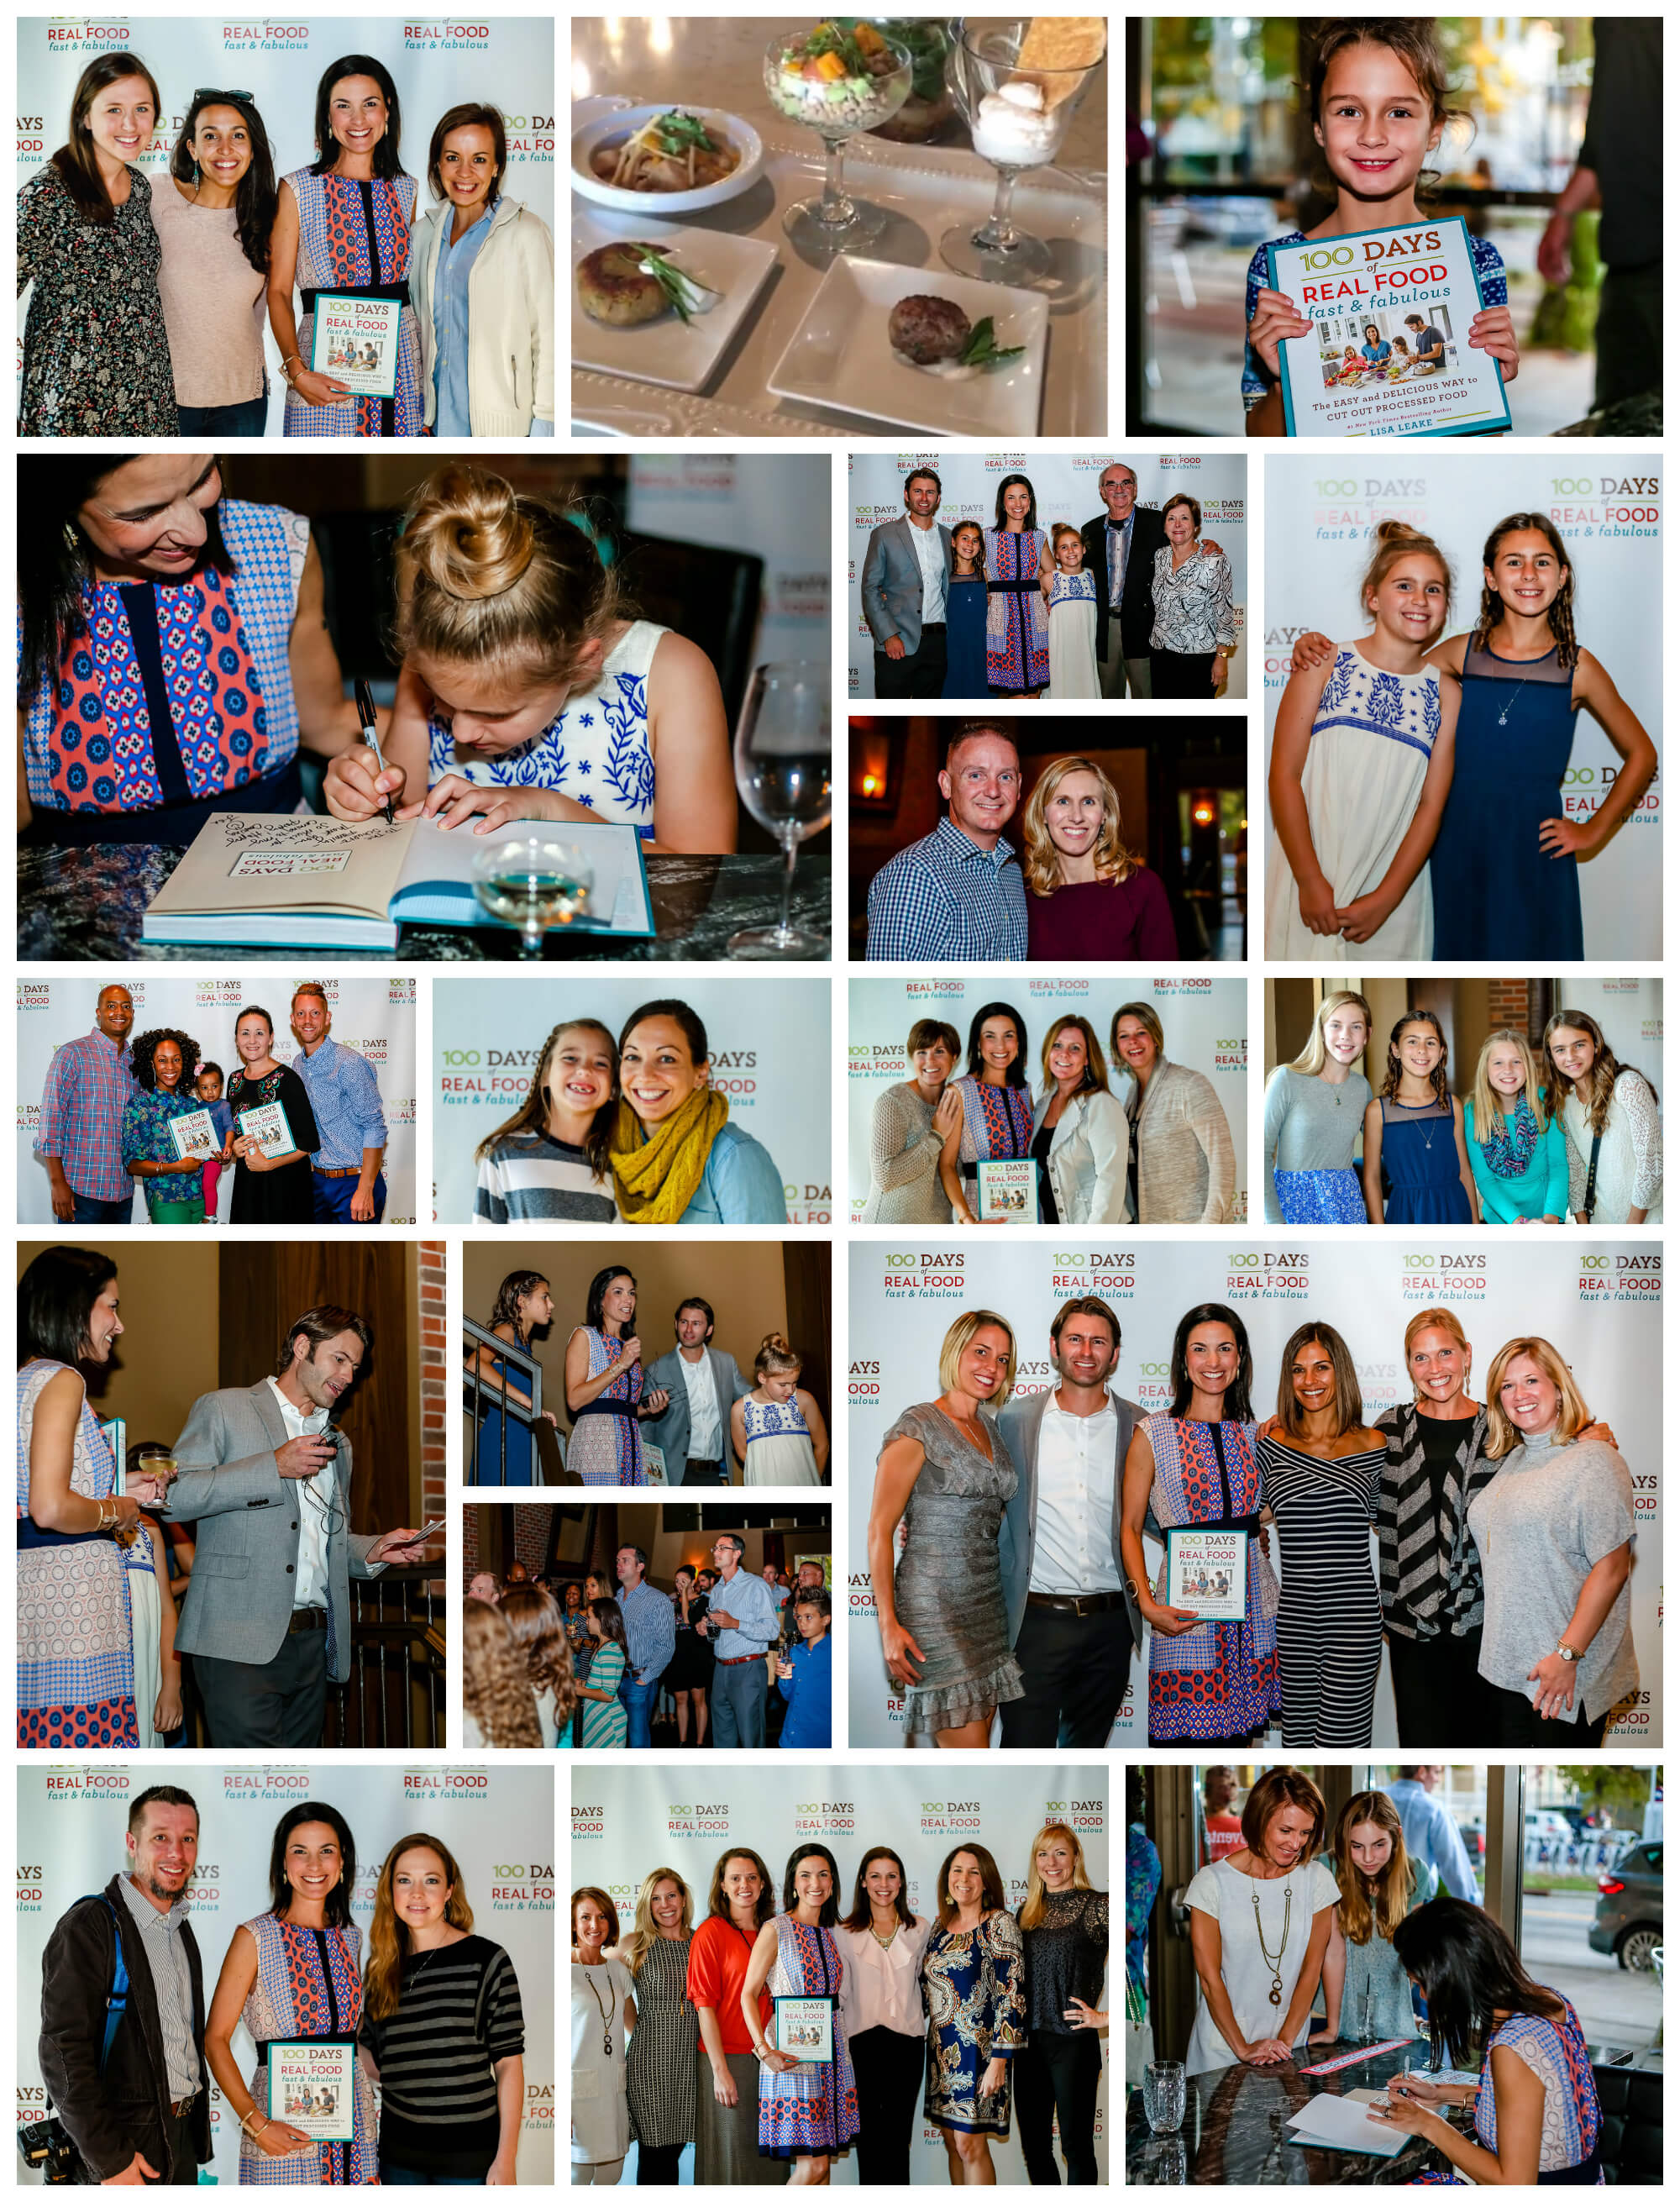 100 Days of Real Food: Fast & Fabulous New Cookbook Launch Party at Passion8 in Charlotte, NC